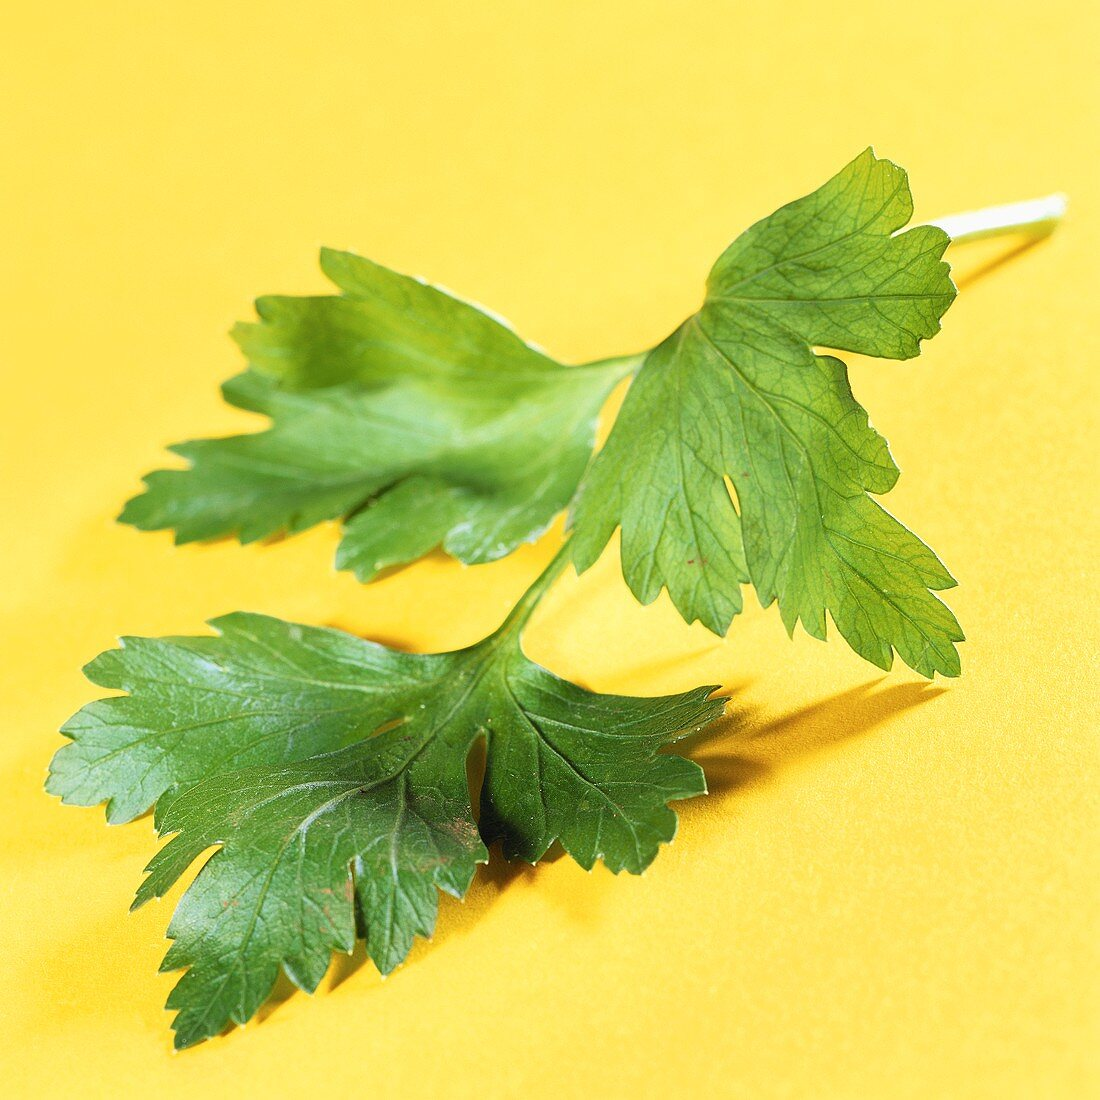 A sprig of parsley